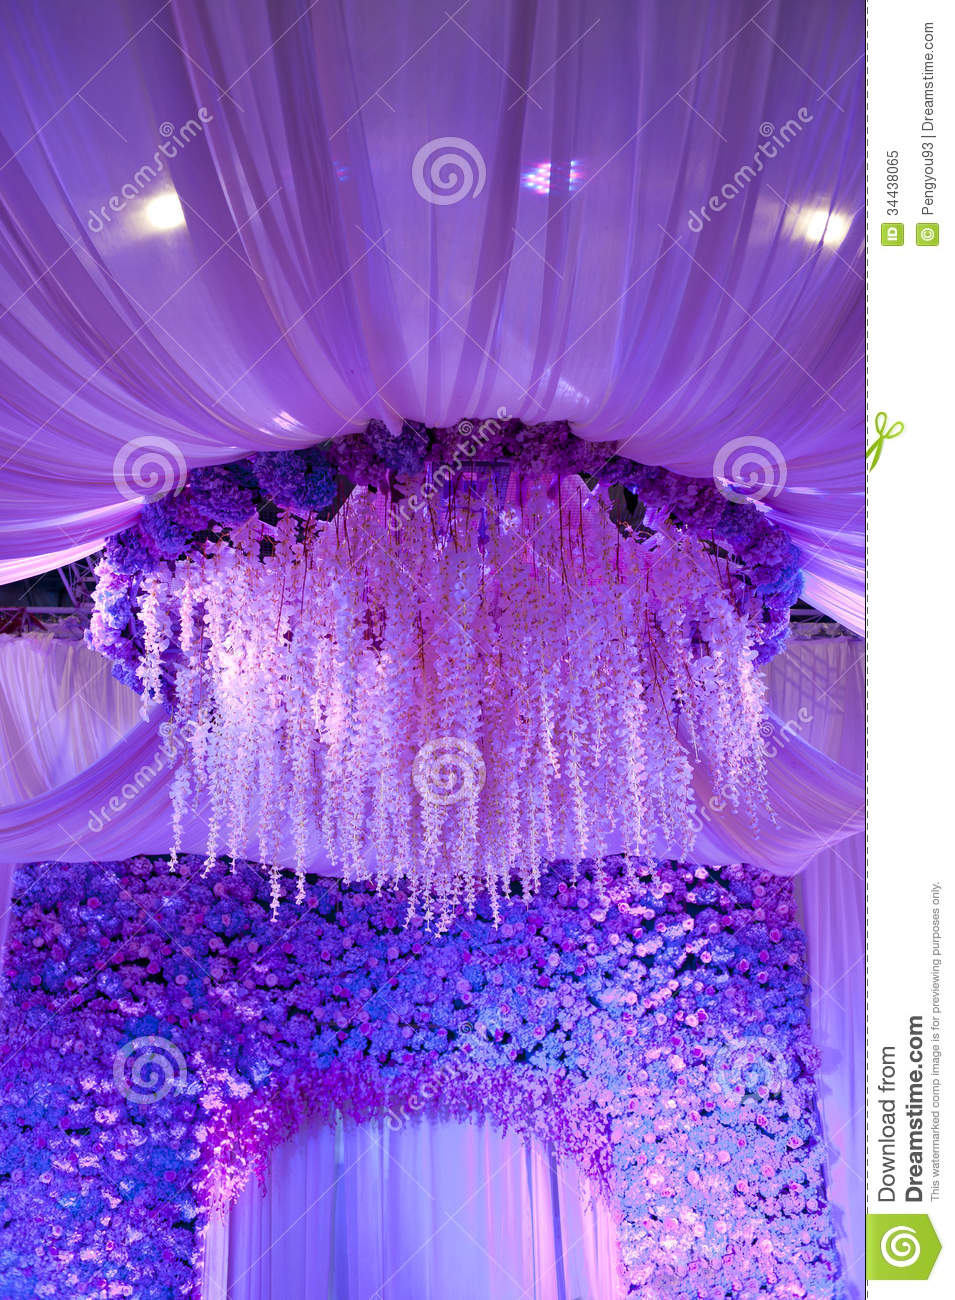 Wedding flowers background design stage & Wedding Flowers Background Design Stage Stock Image - Image of roses ...